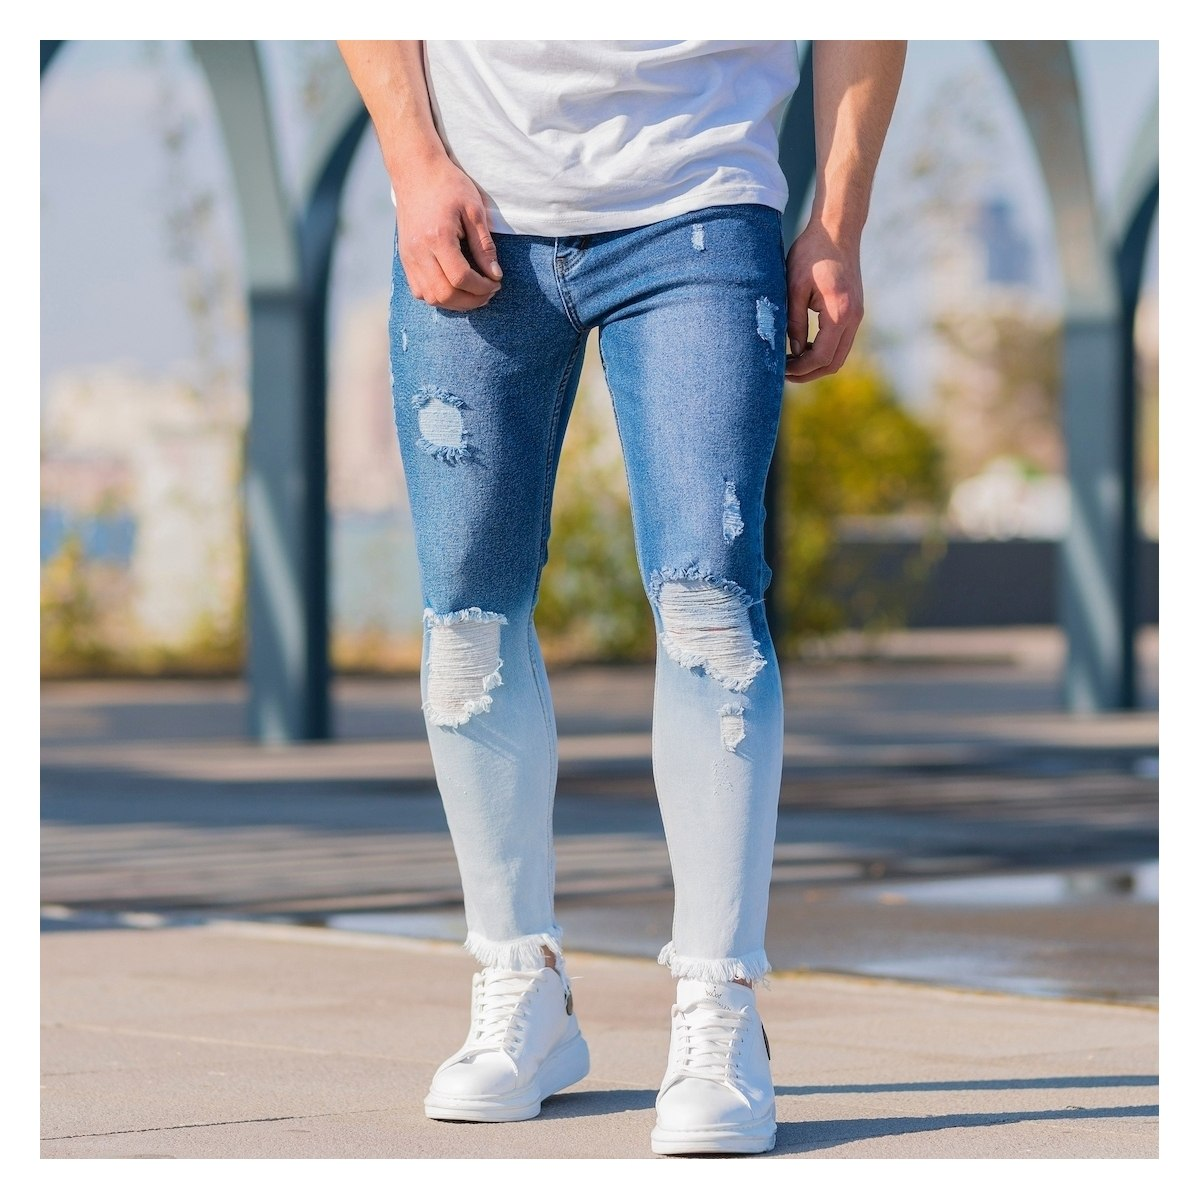 Men's Ragged Degrade Jeans...